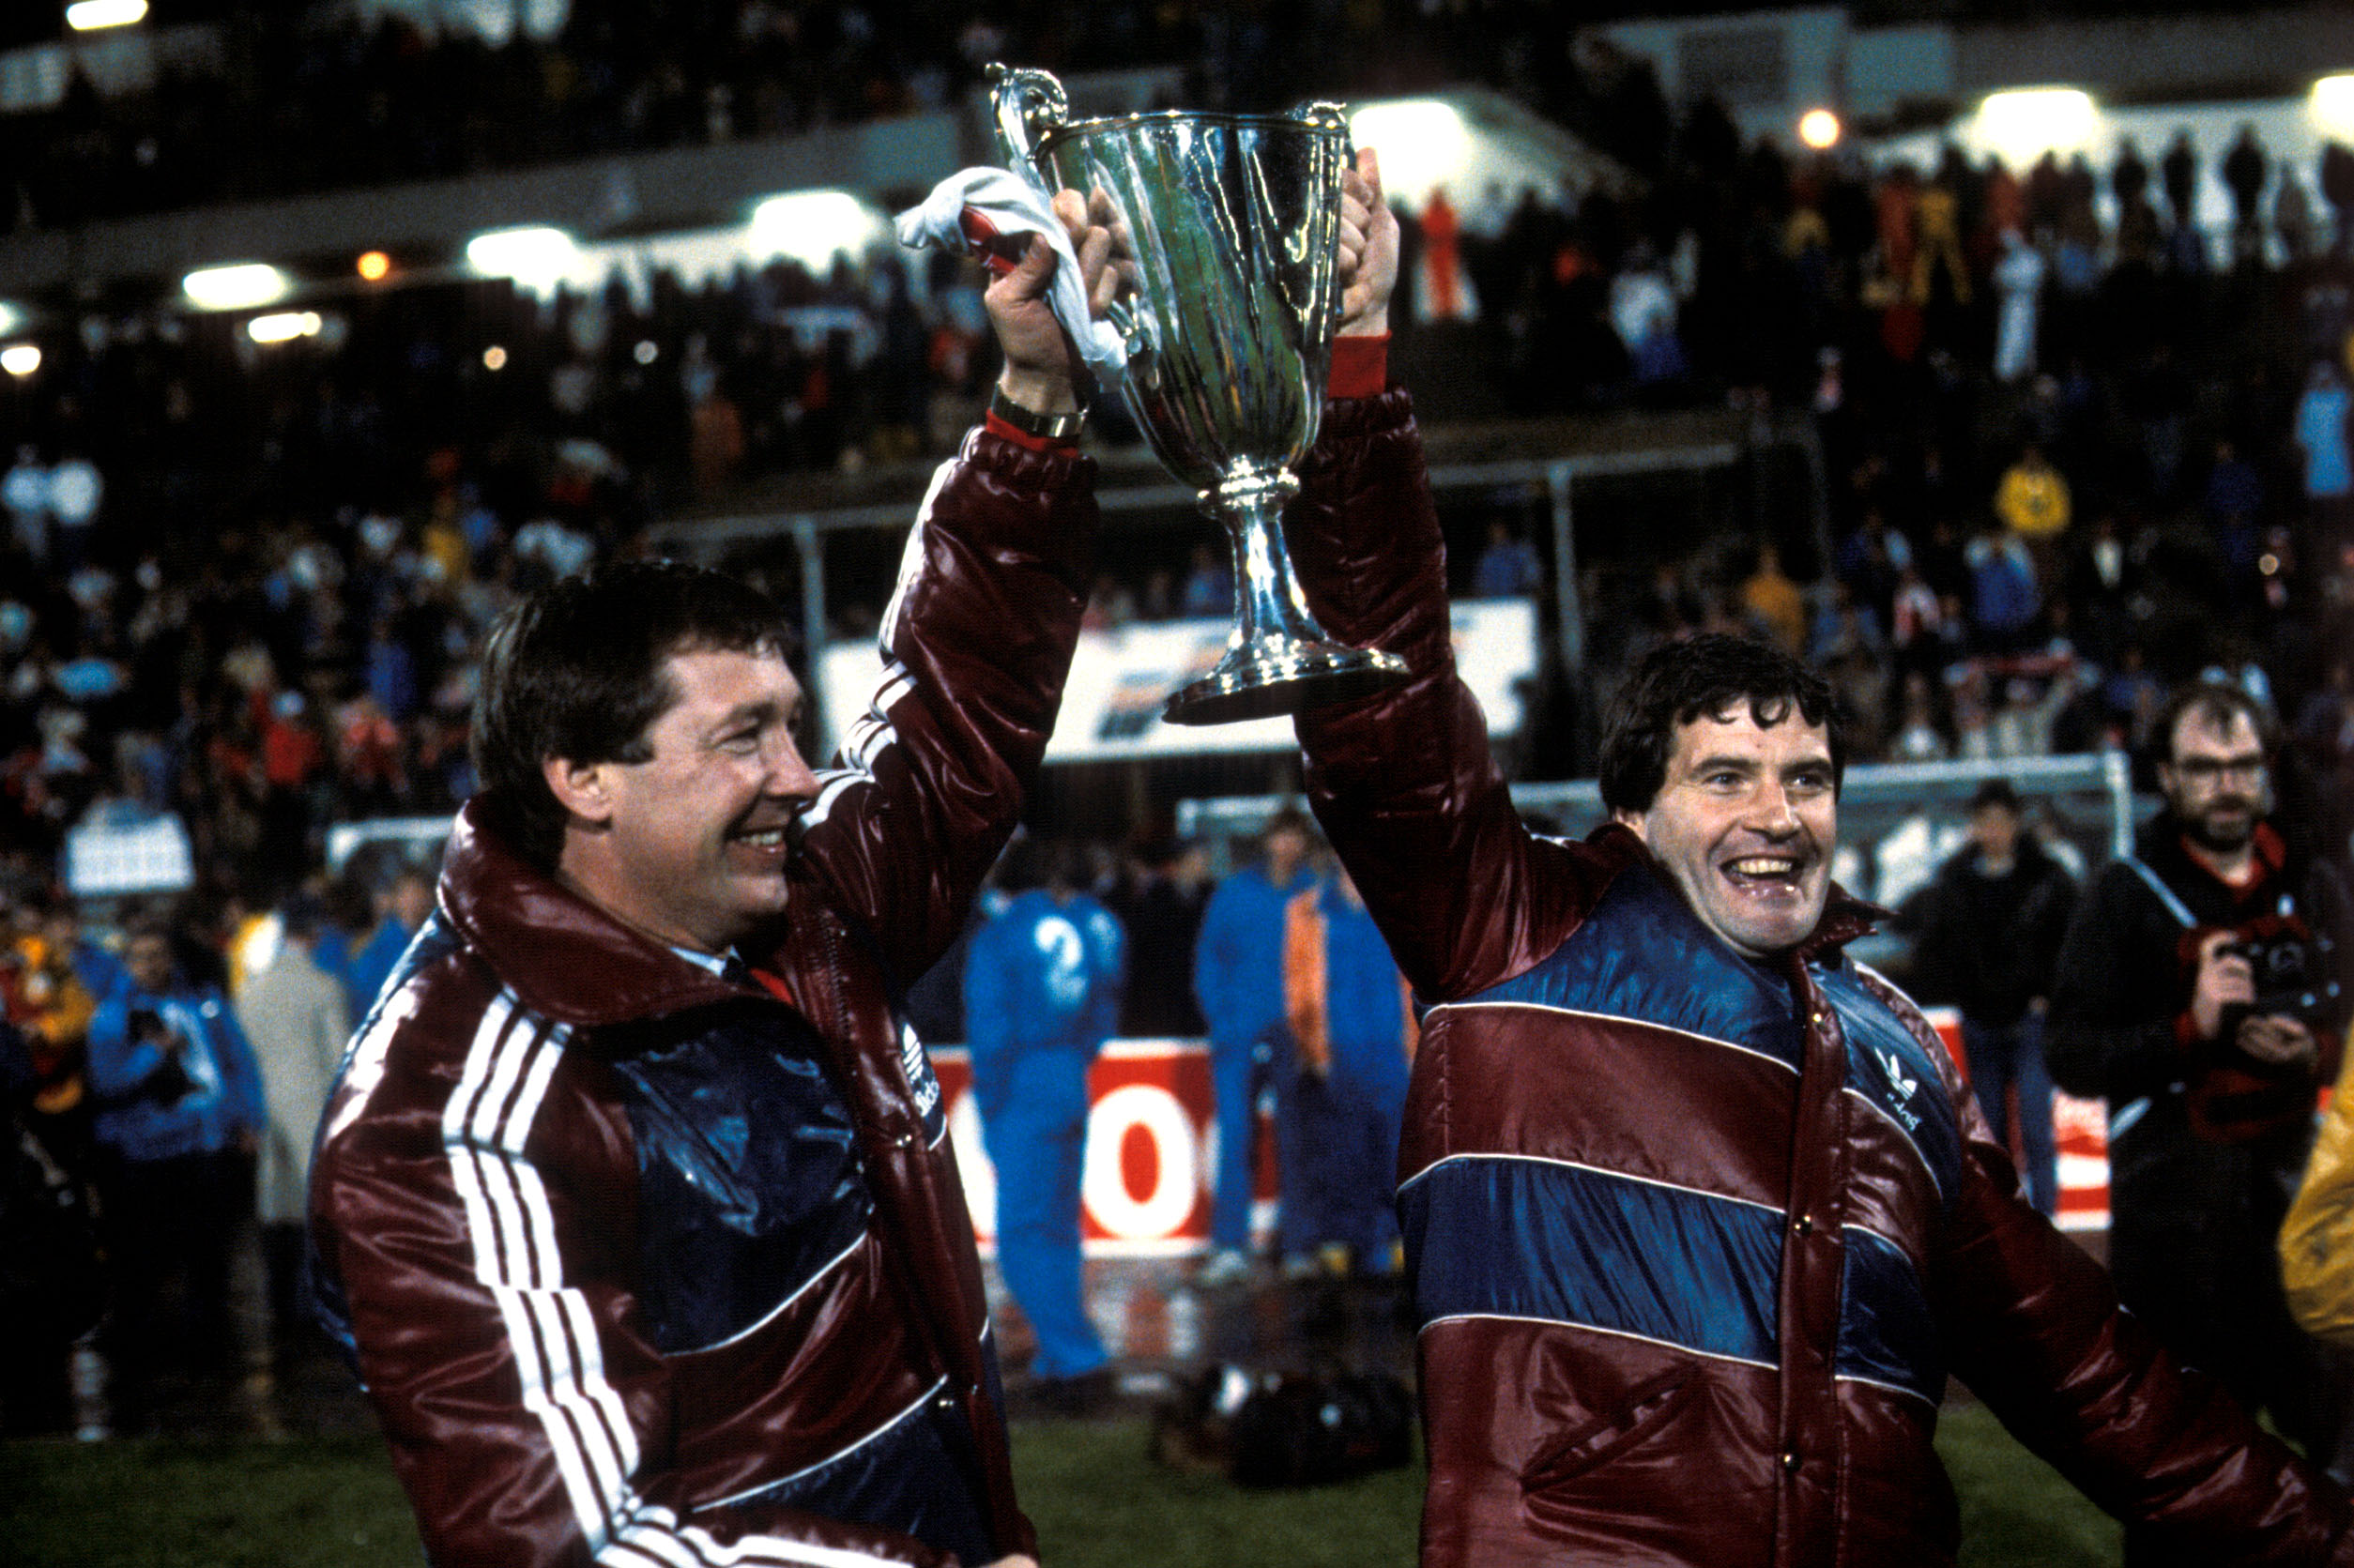 Aberdeen manager Alex Ferguson (left) and assistant Archie Knox celebrate with the trophy in Gothenburg in 1983.